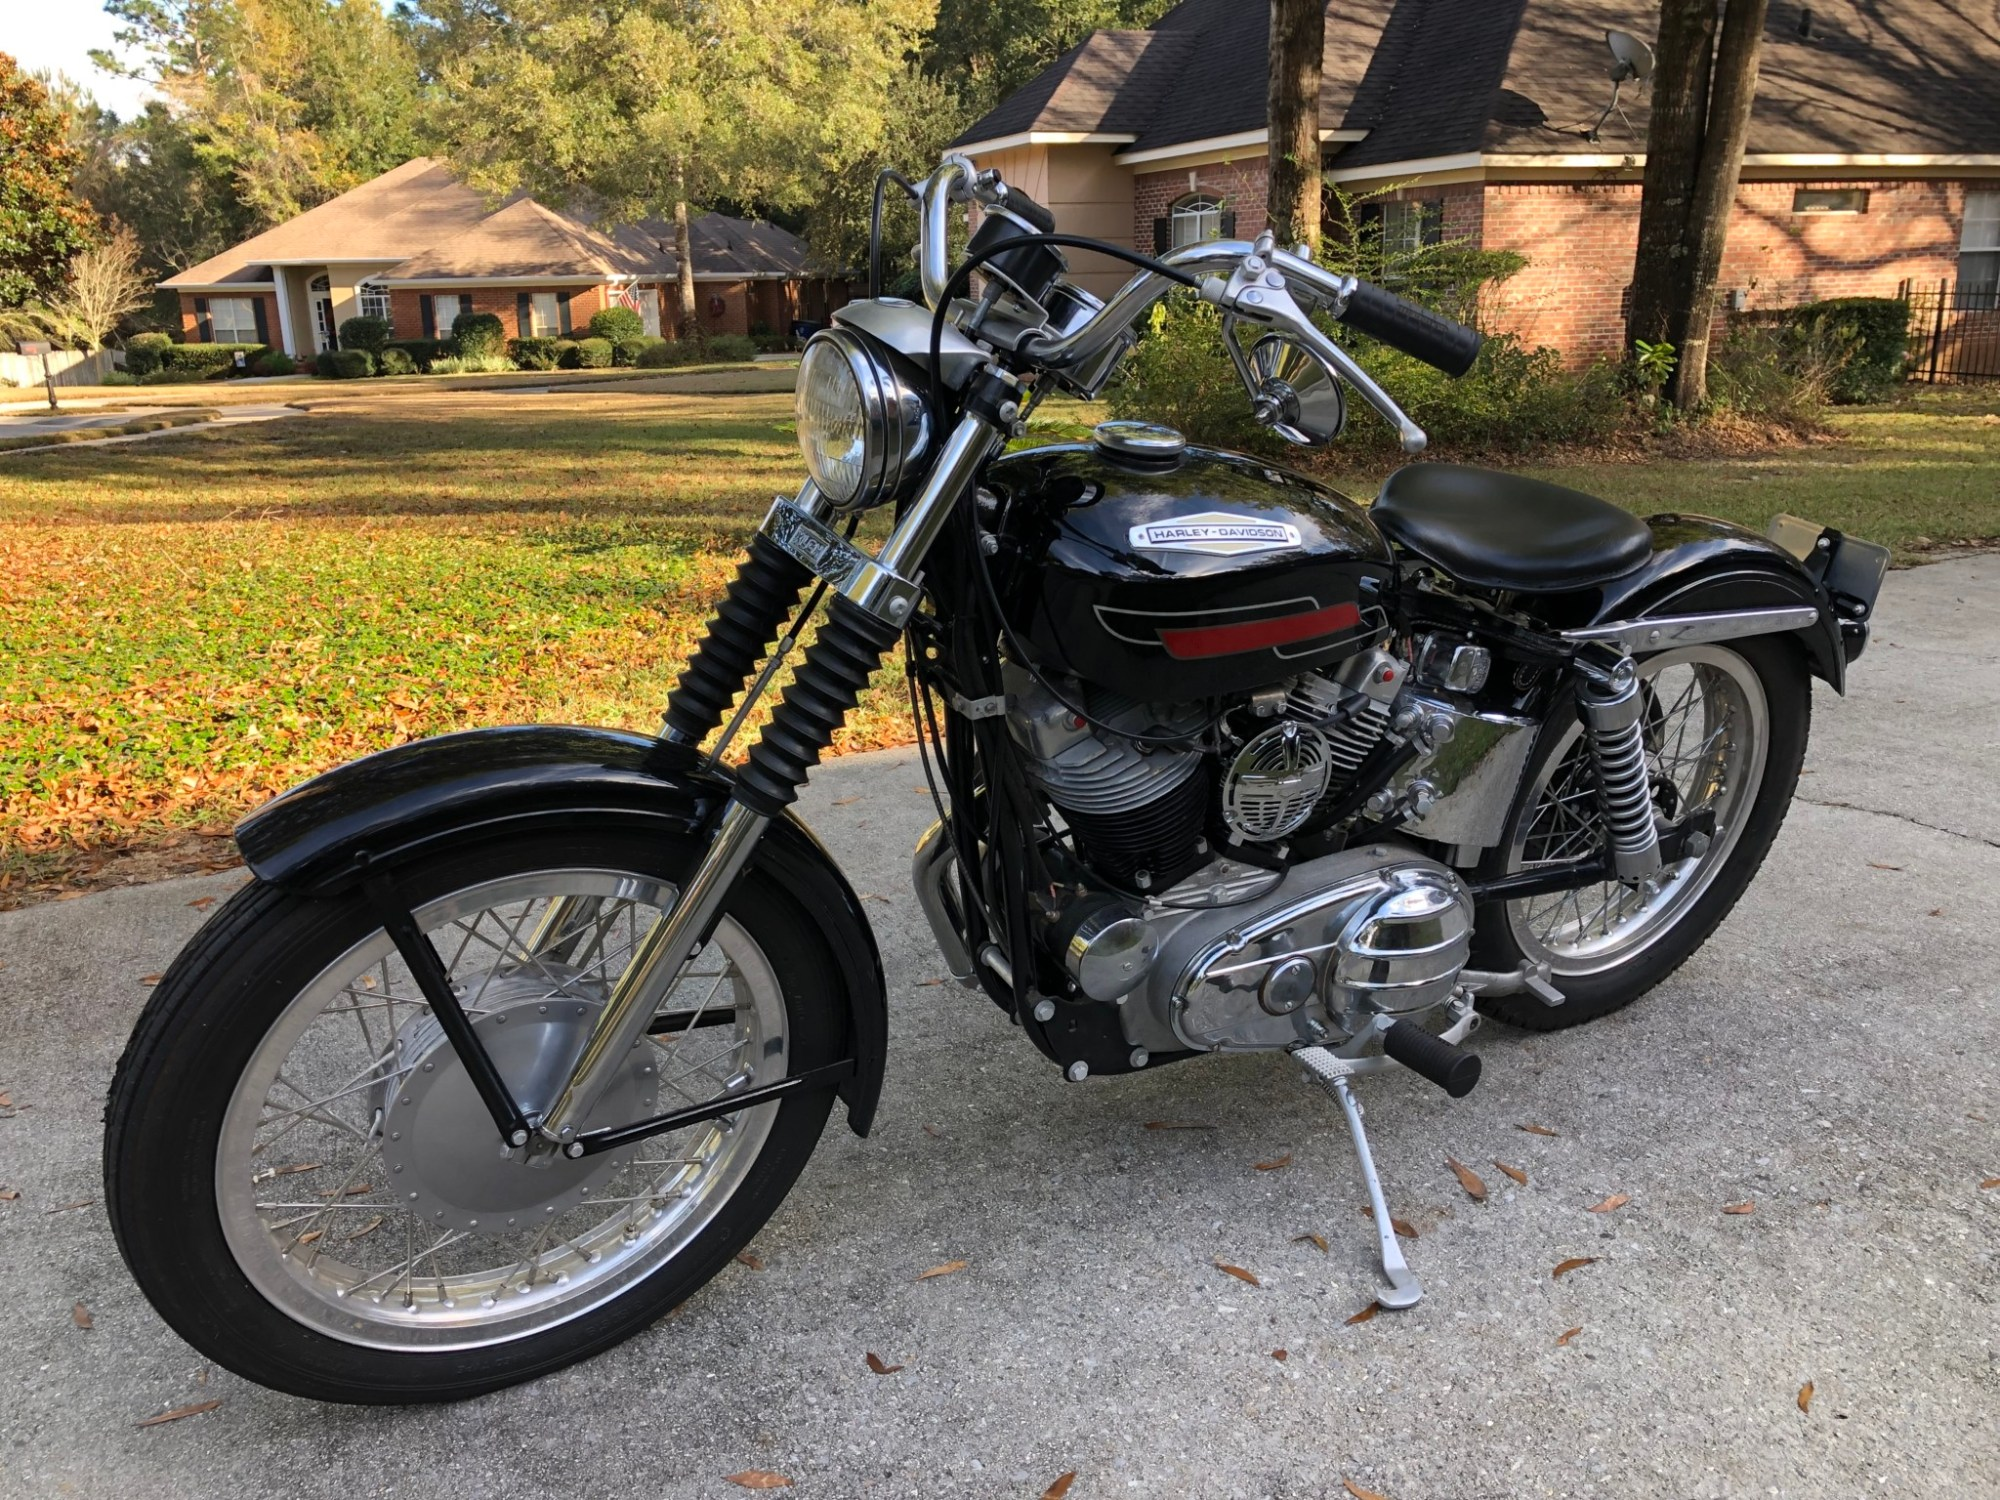 hight resolution of 1967 harley davidson xlch sportster for sale on bat auctions sold for 8 000 on february 6 2019 lot 16 119 bring a trailer